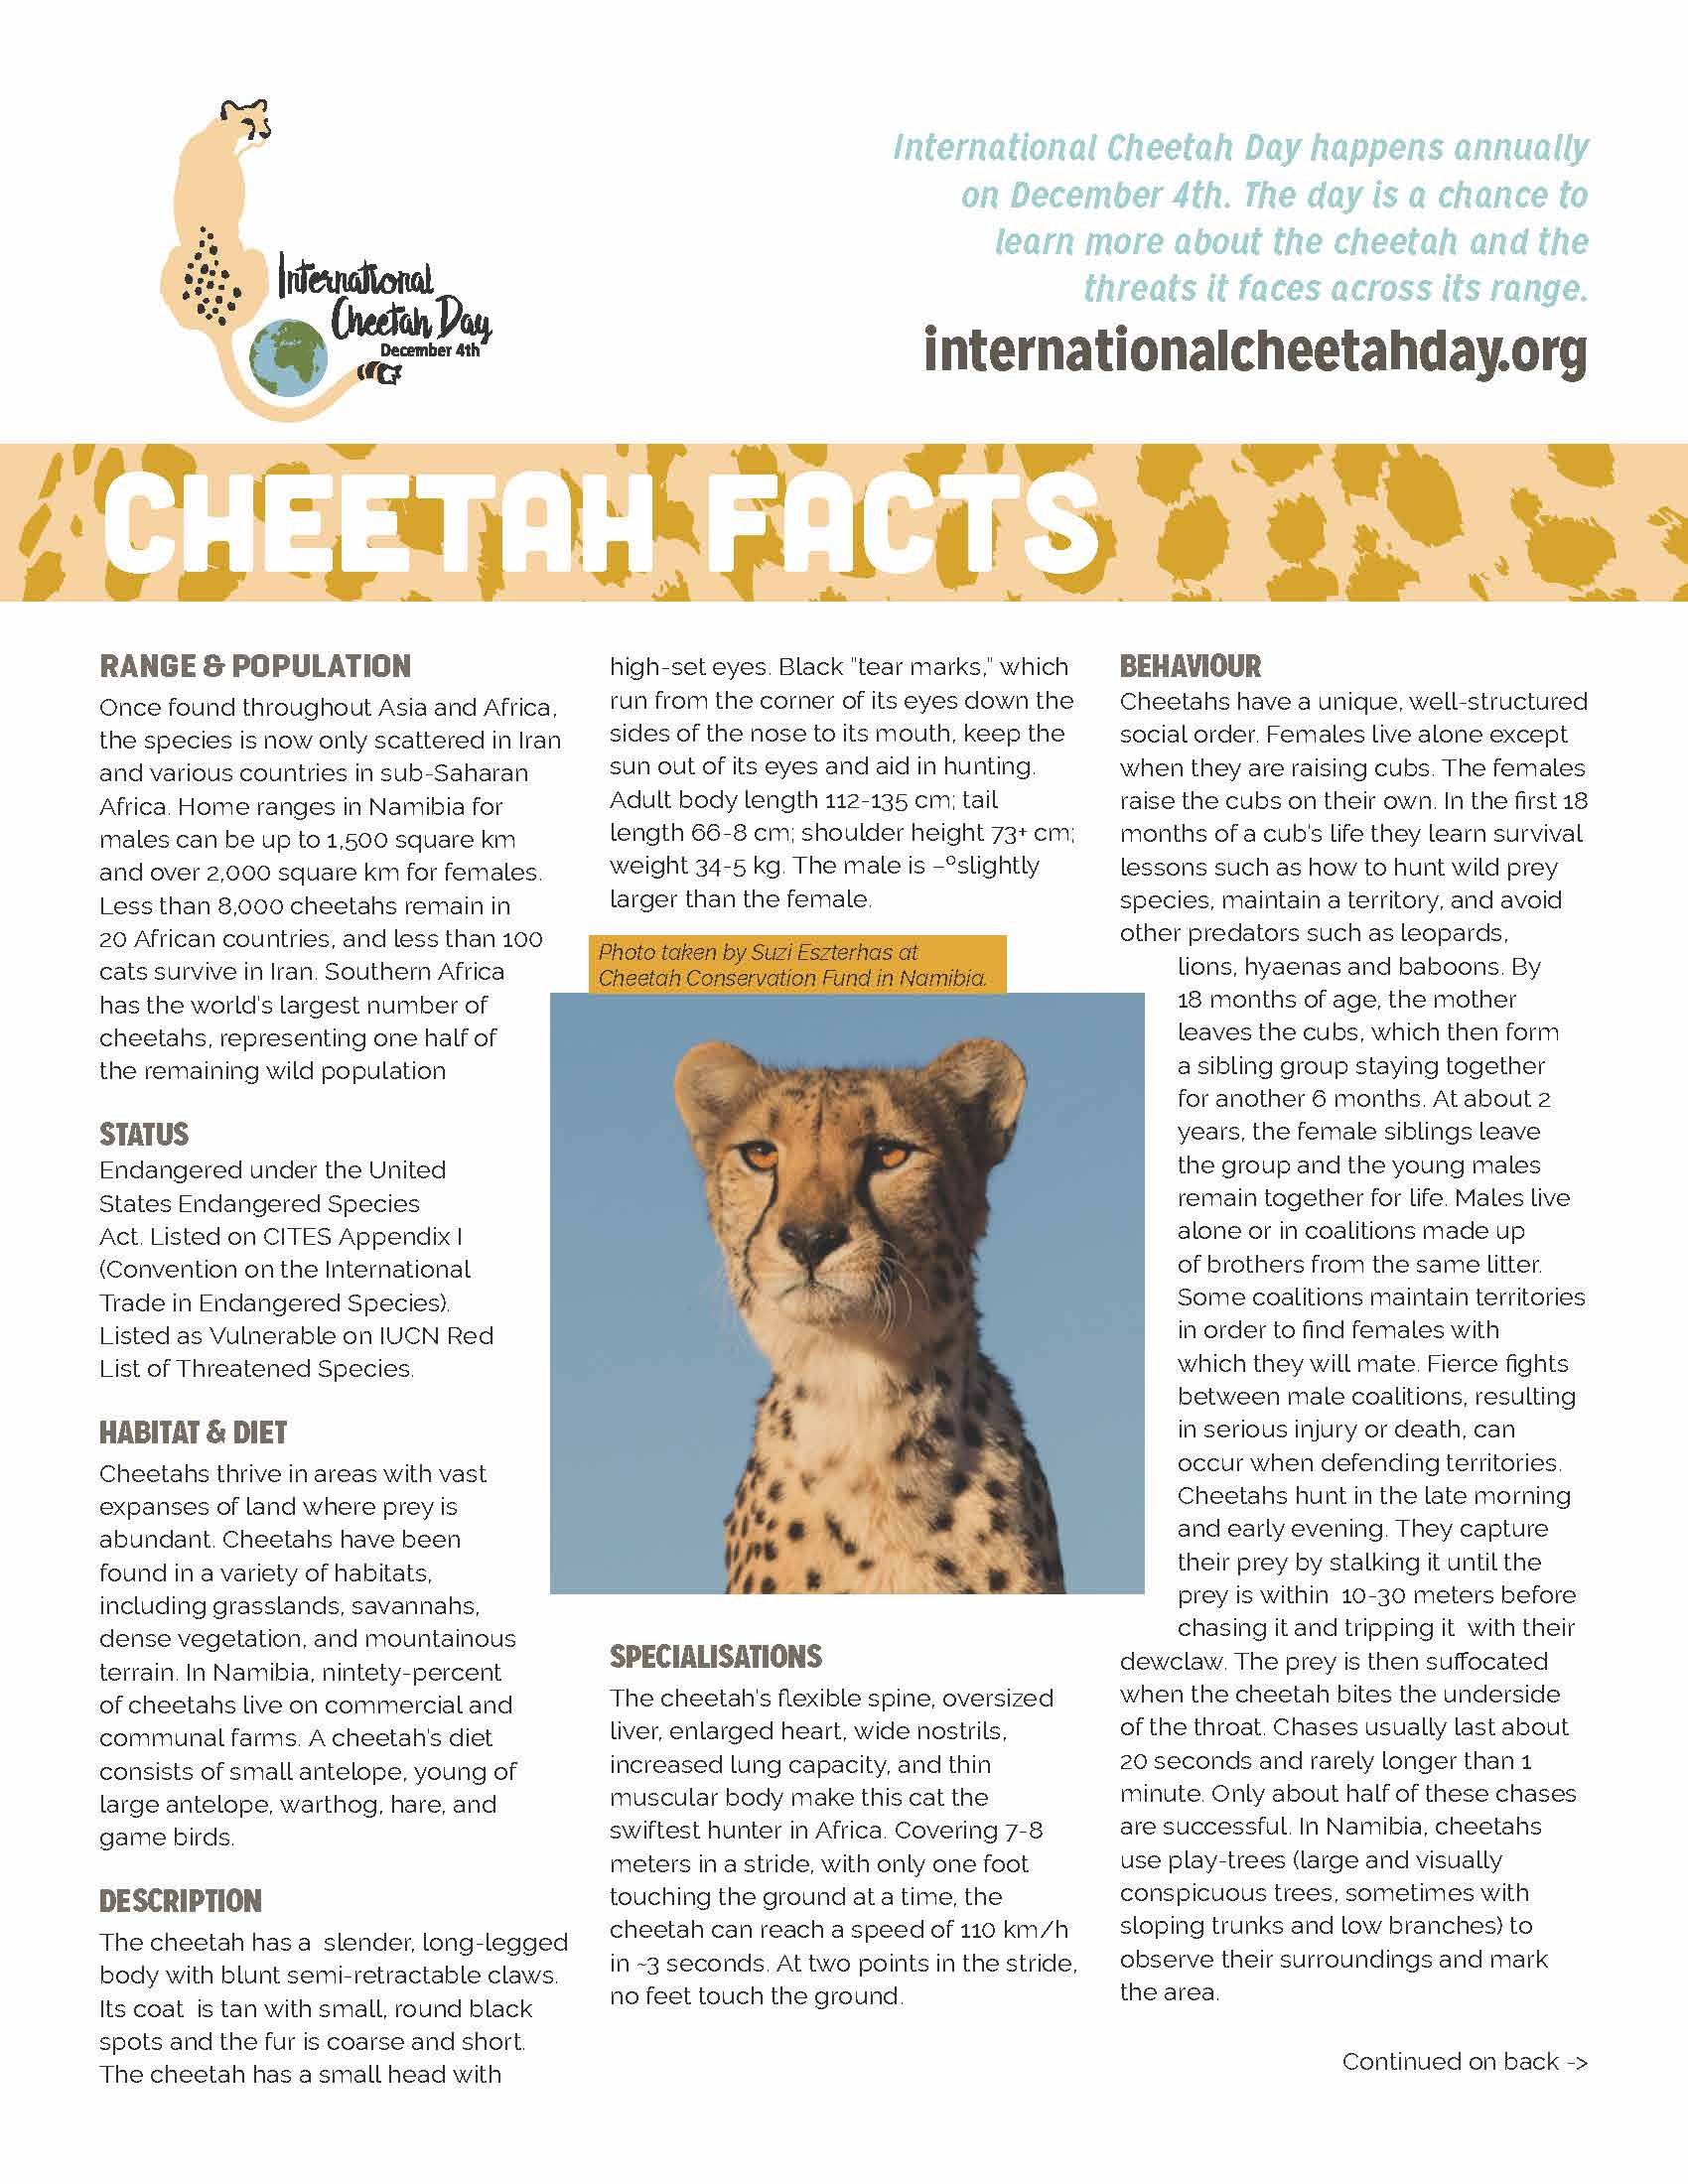 Cheetah Facts - front - International Cheetah Day